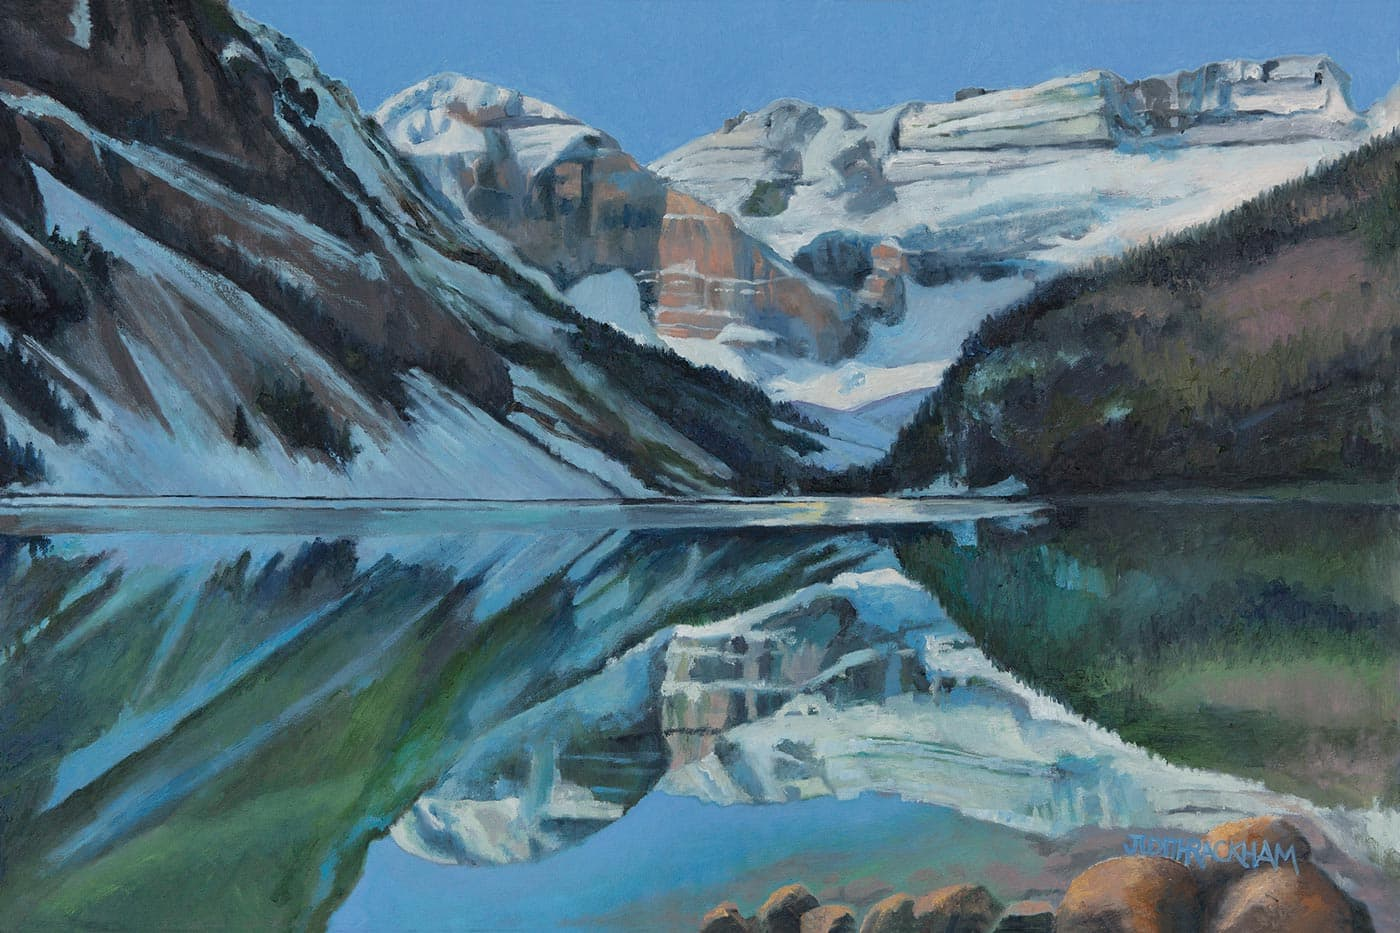 Sliver of Ice  (Iconic Lake Louise - Banff, Alberta)  24 x 36 inches  Medium - Canvas, painted in oils.  Price $1512.00